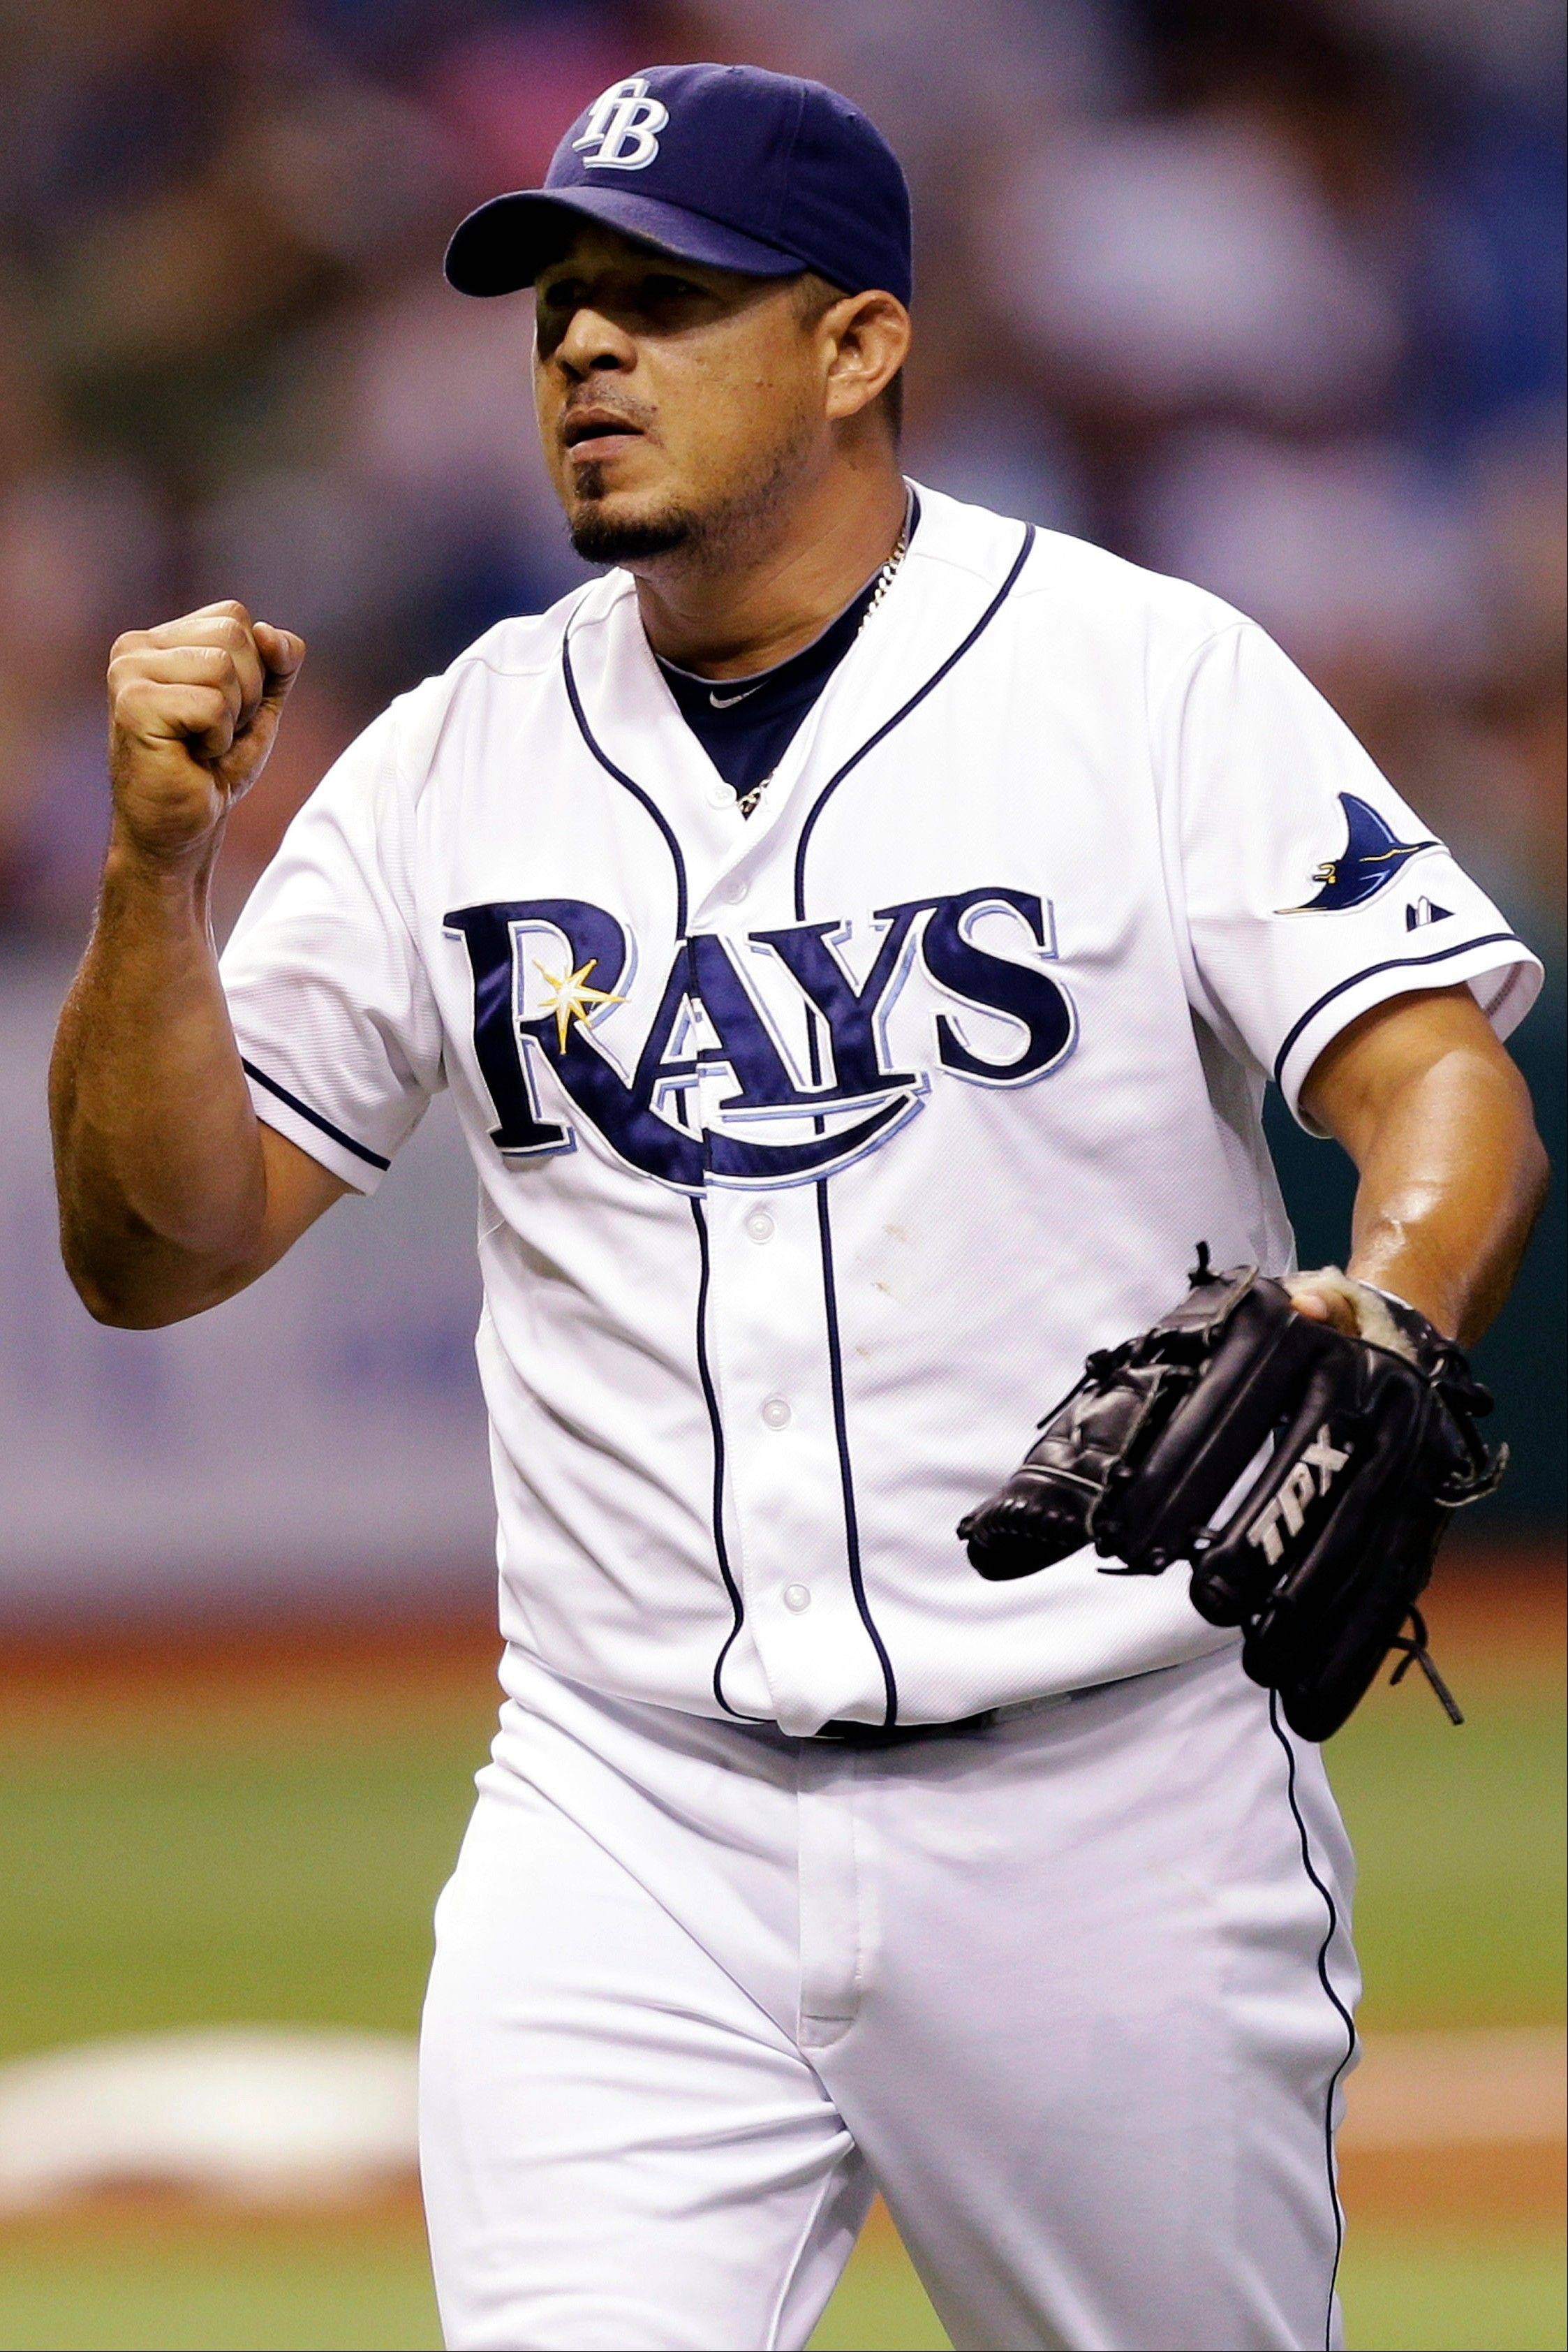 Tampa Bay Rays relief pitcher Joel Peralta pumps his fist after striking out New York's Nick Swisher during the eighth inning Tuesday in St. Petersburg, Fla.